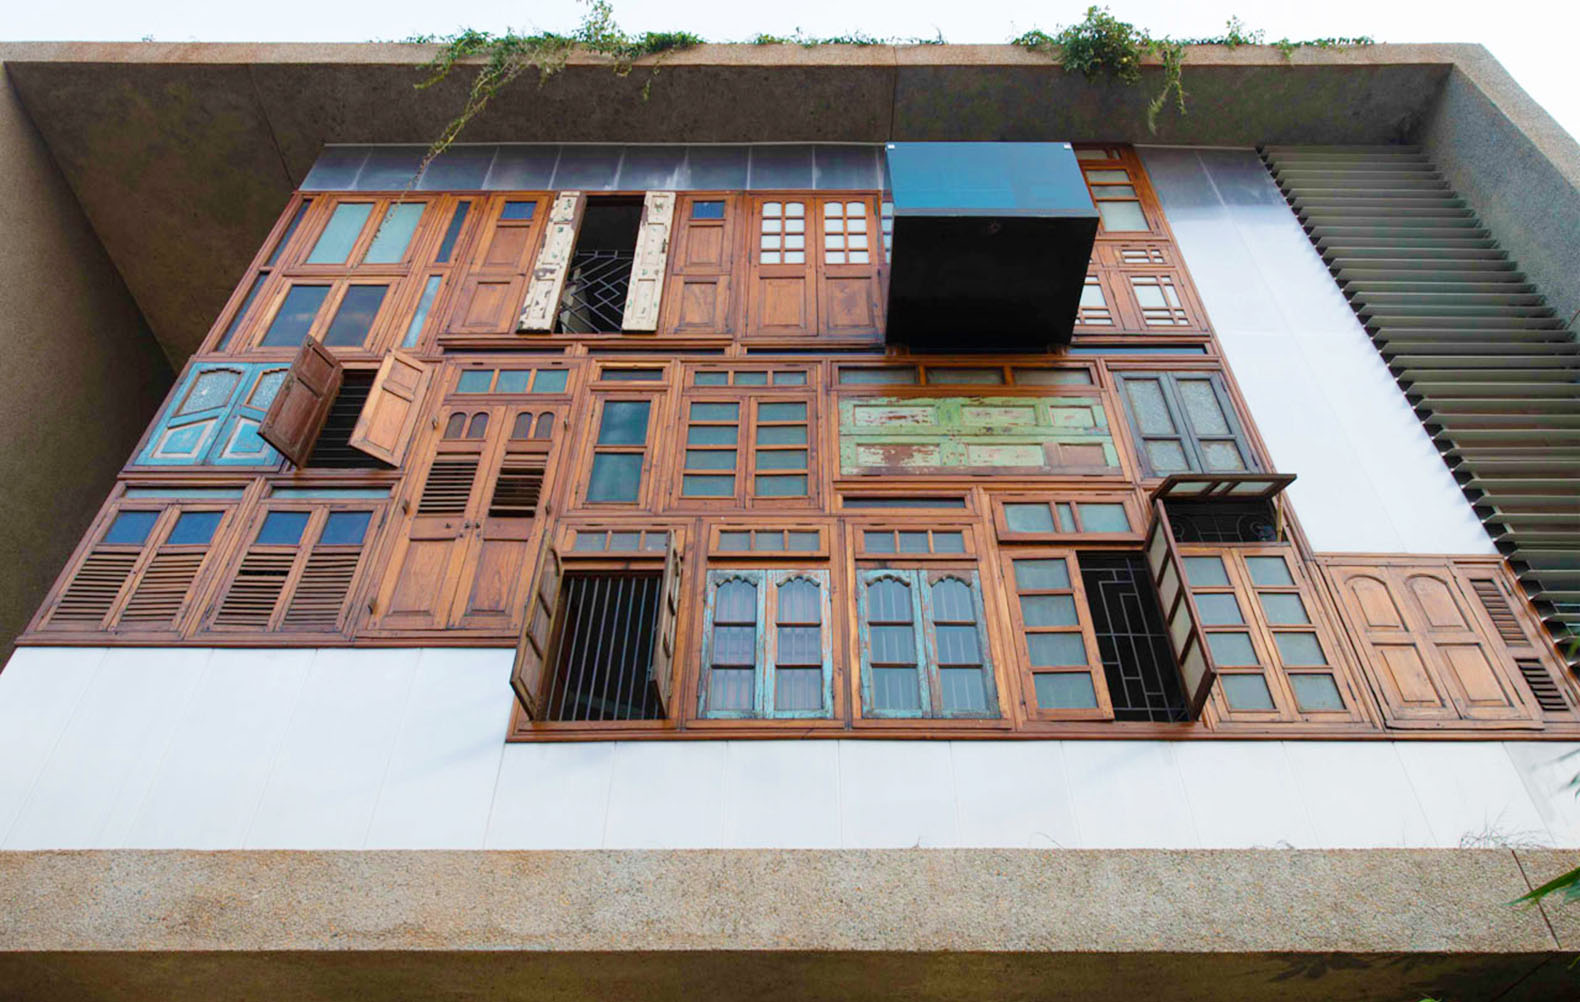 Collage House Mumbai S+PS Architects recycled doors recycled materials & A colorful facade of recycled doors and windows adorns this unique ... Pezcame.Com